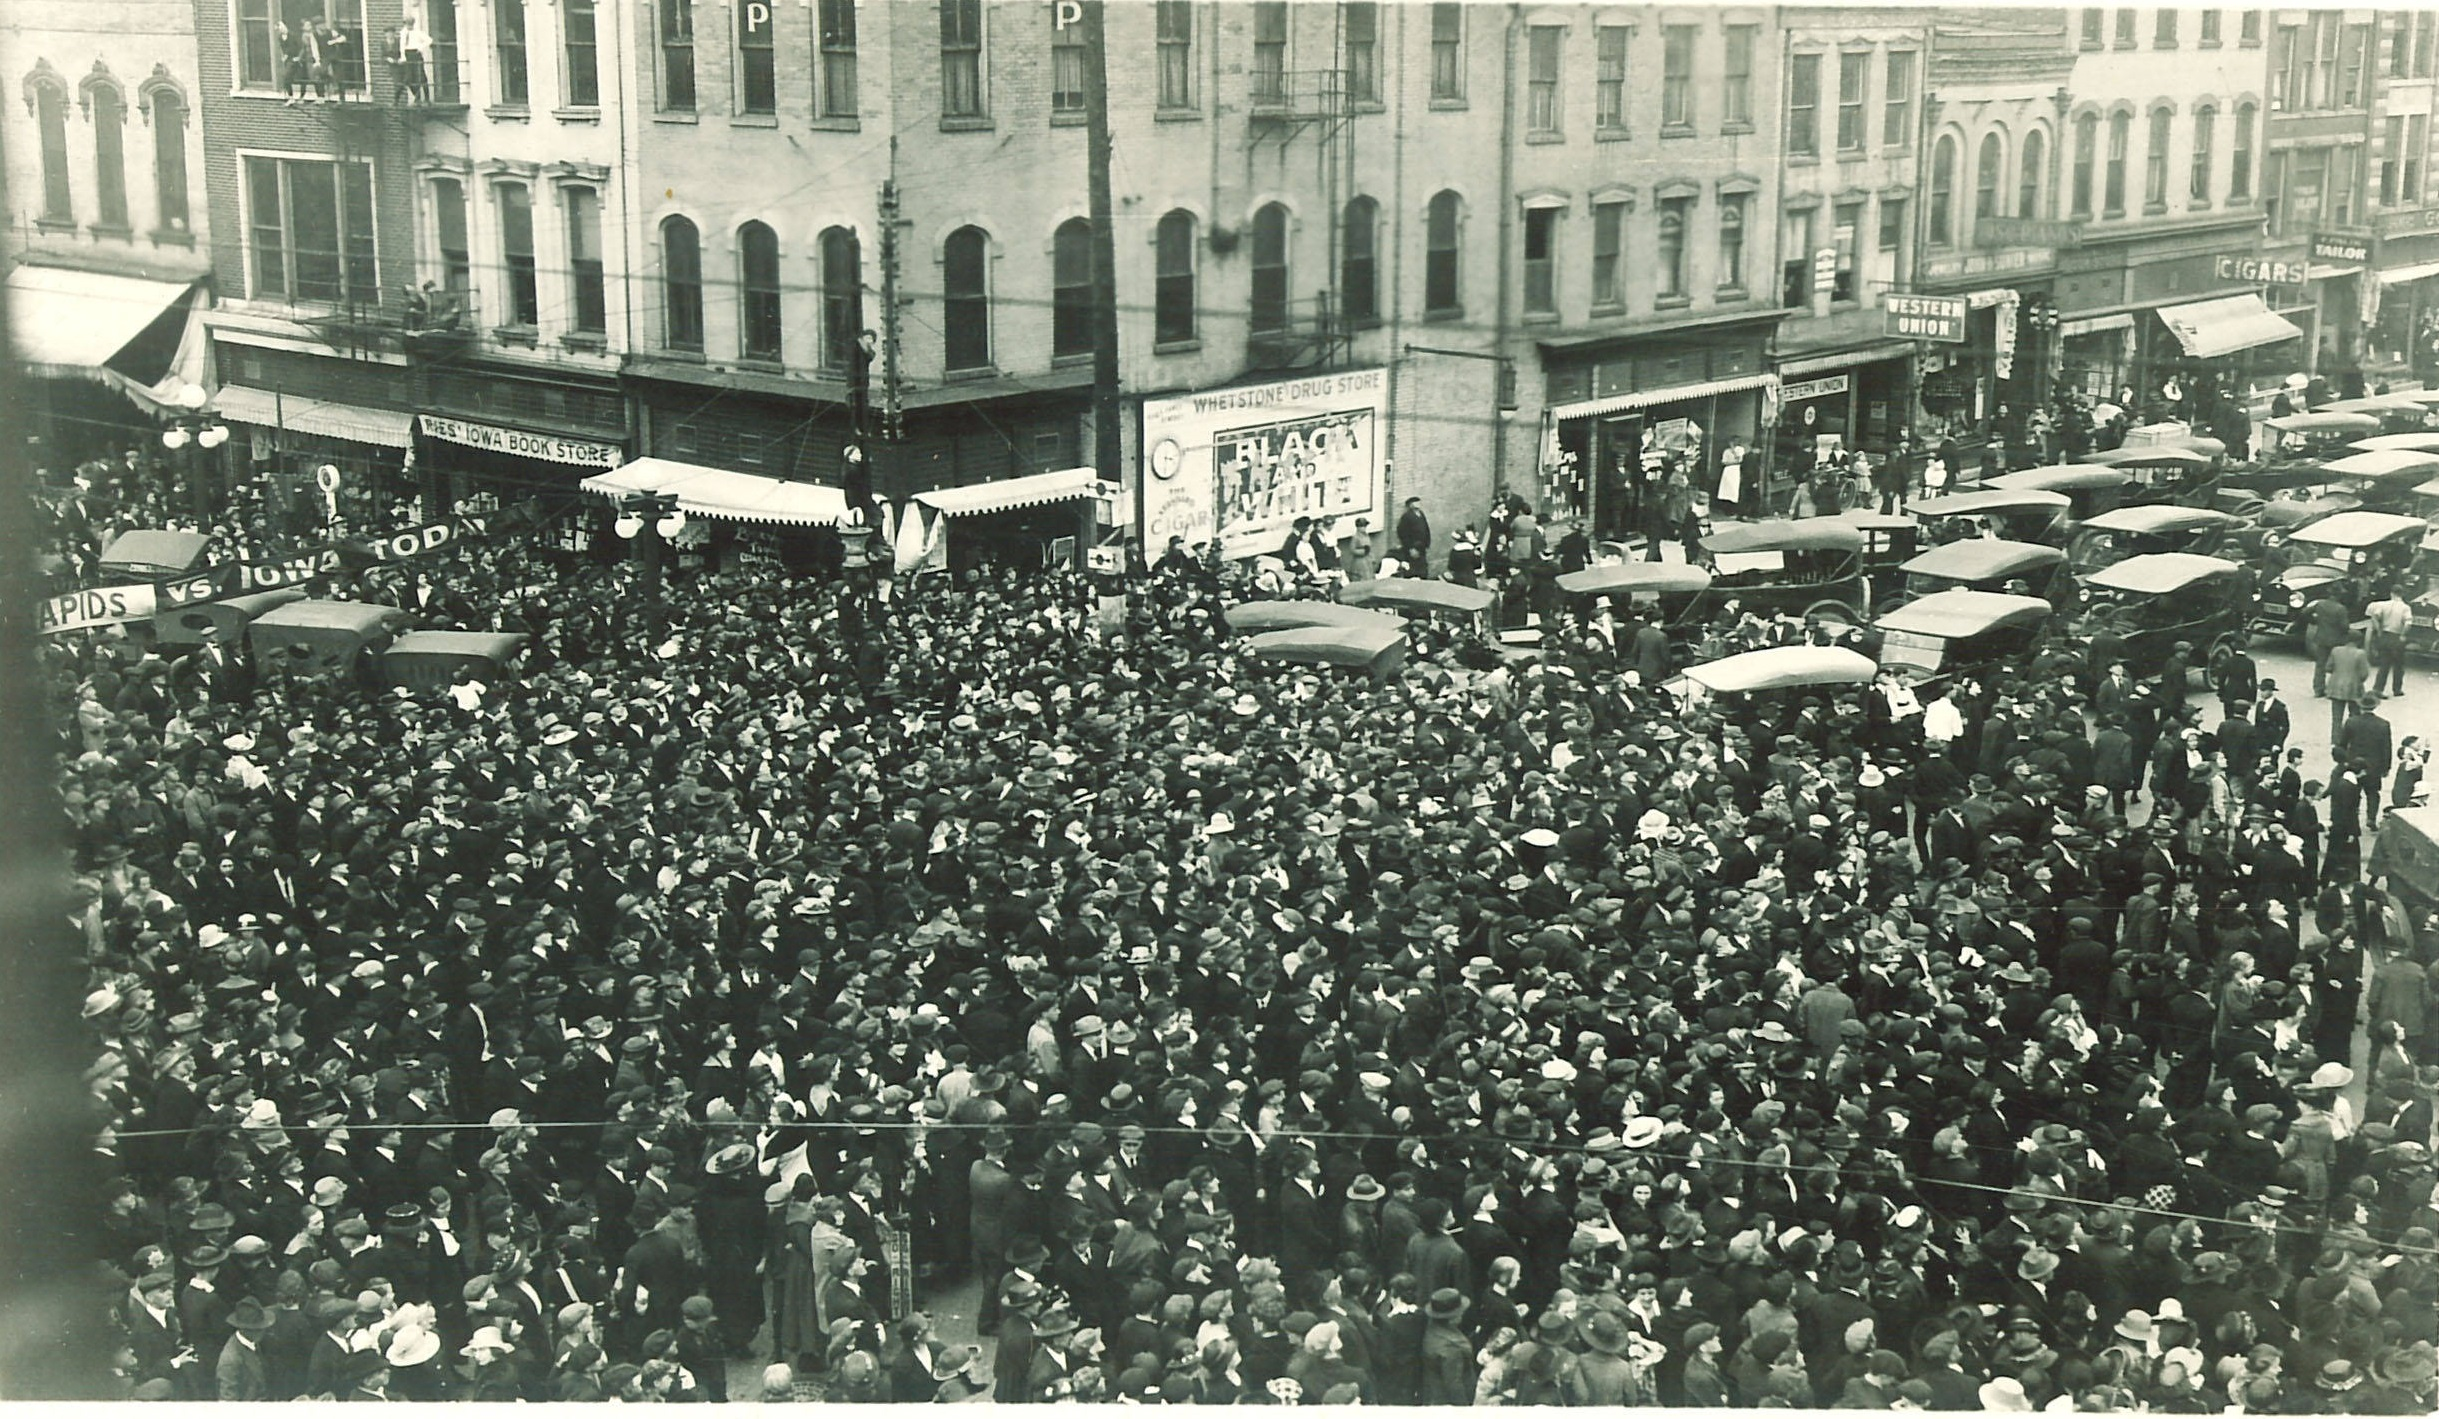 crowd waiting to buy football tickets in 1920